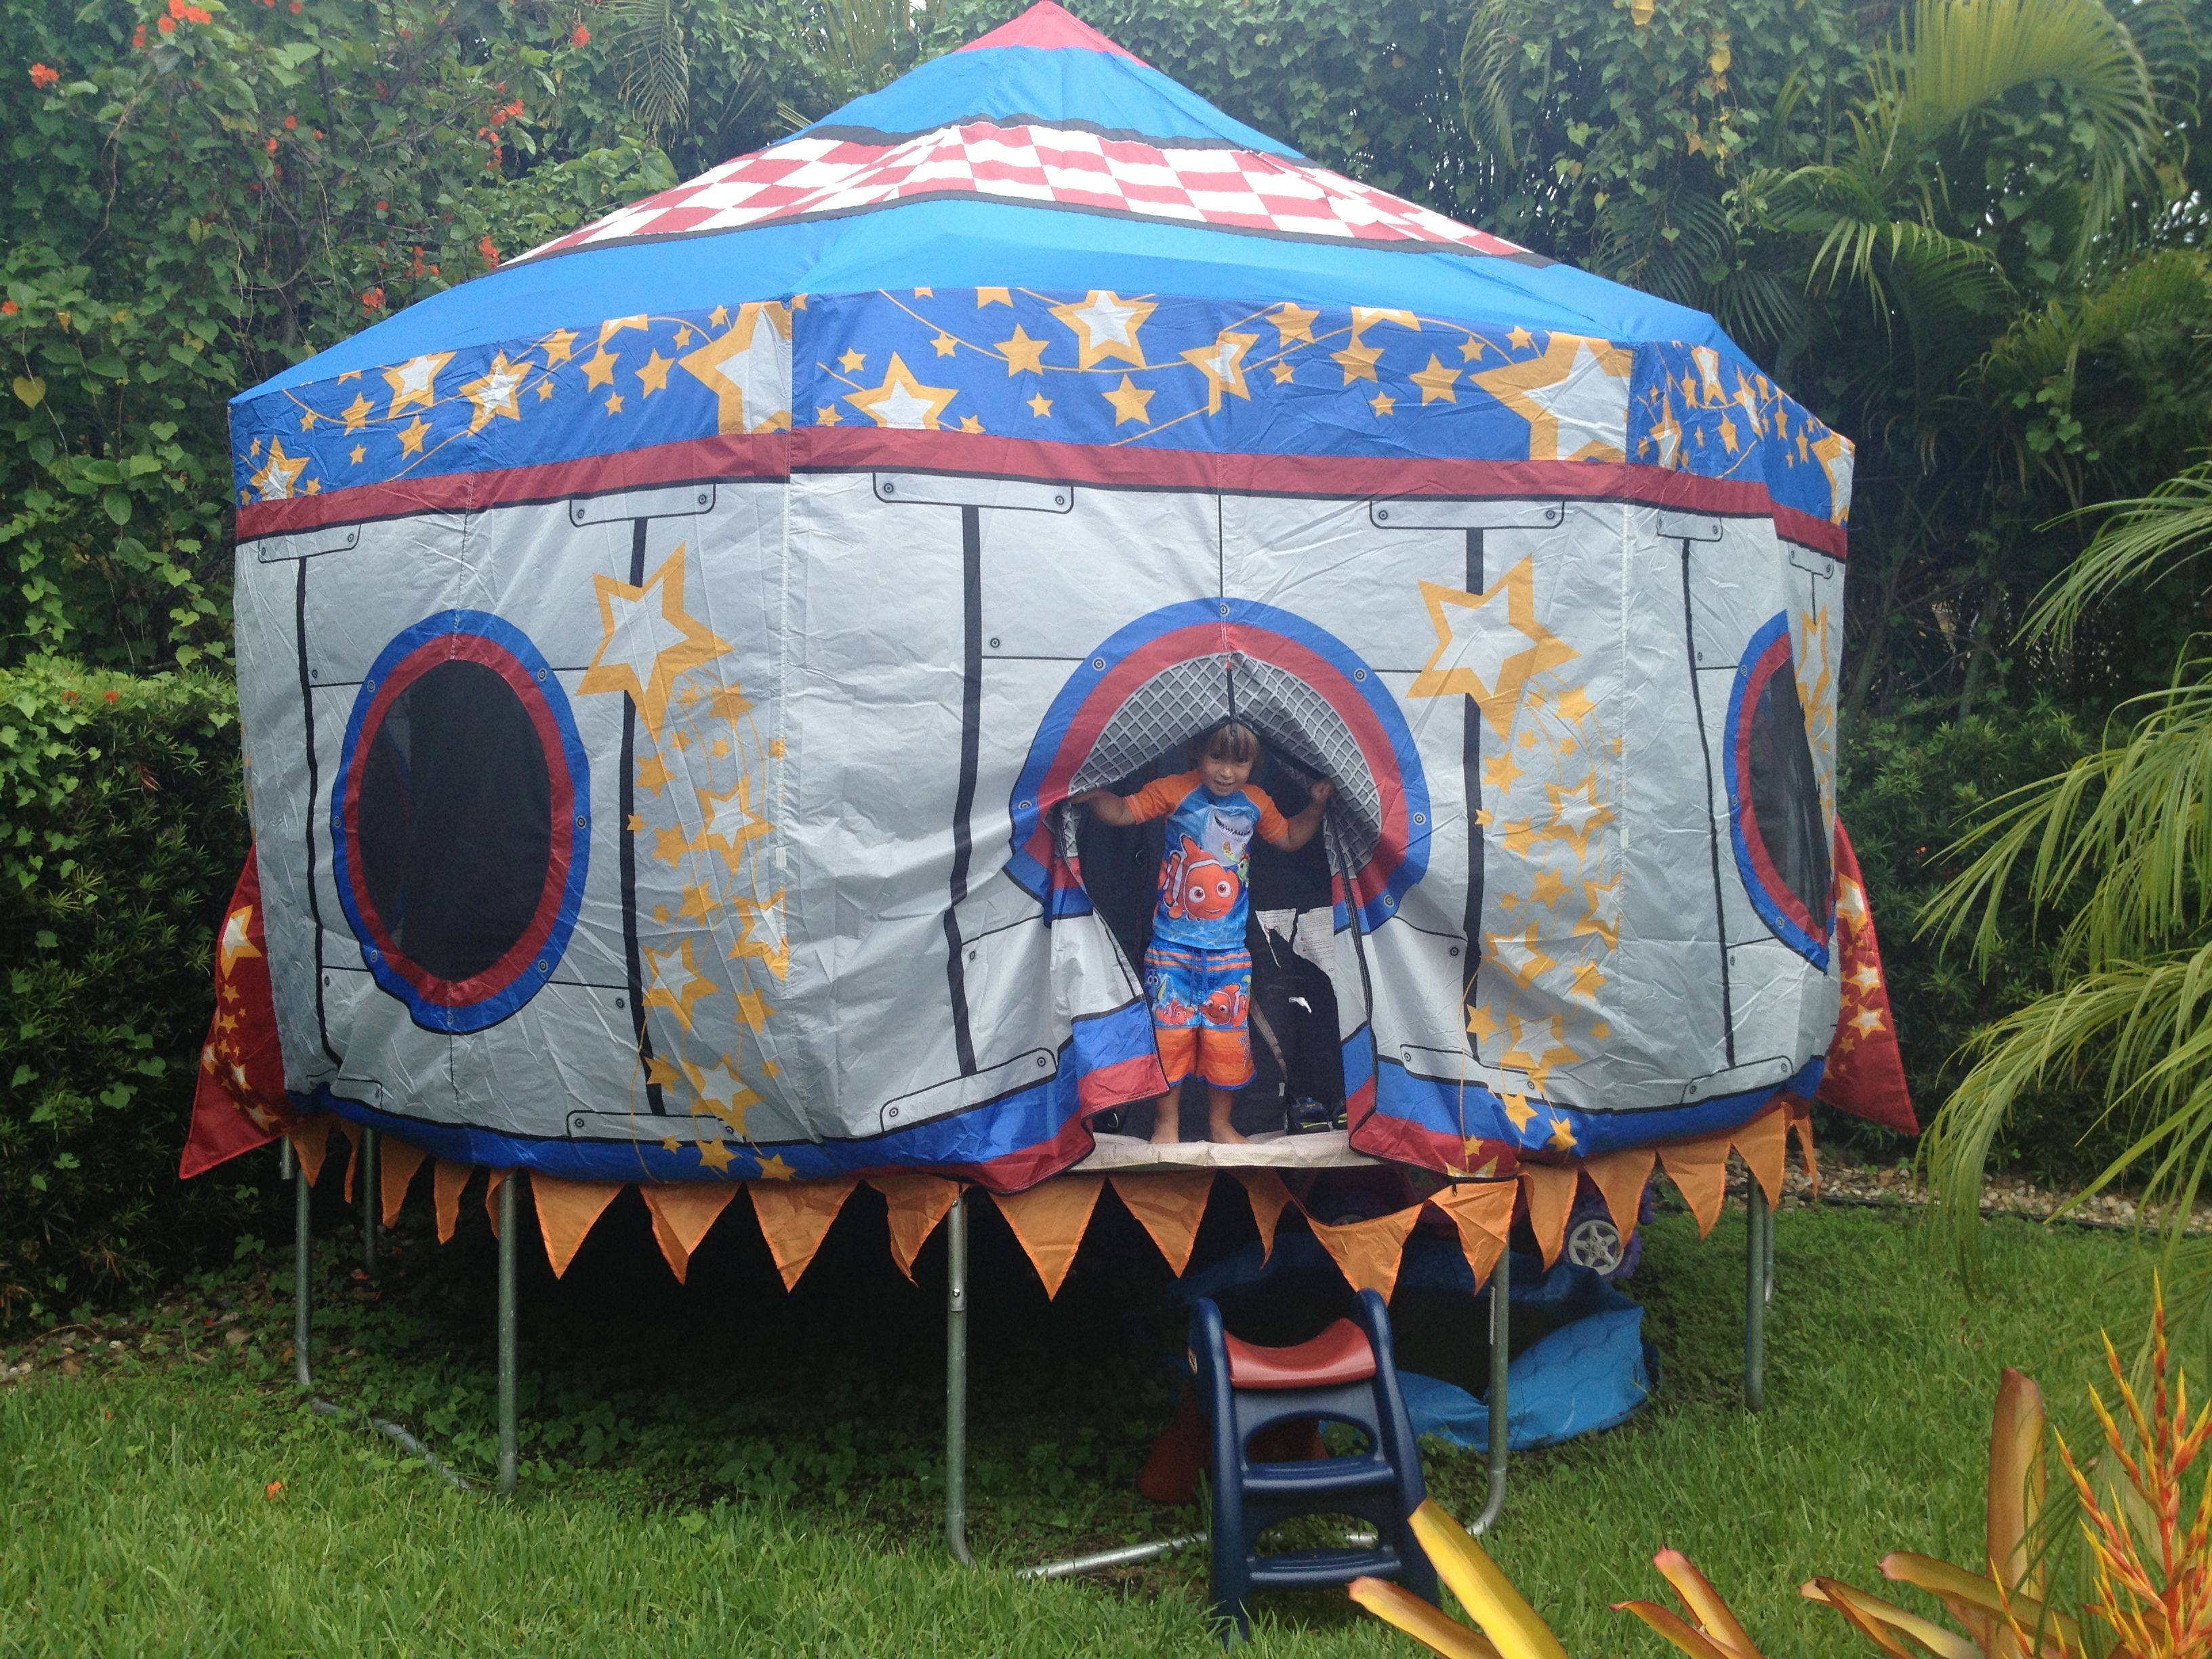 Trampoline Tent Bought On Amazon Nicholas 39 S Thomas The